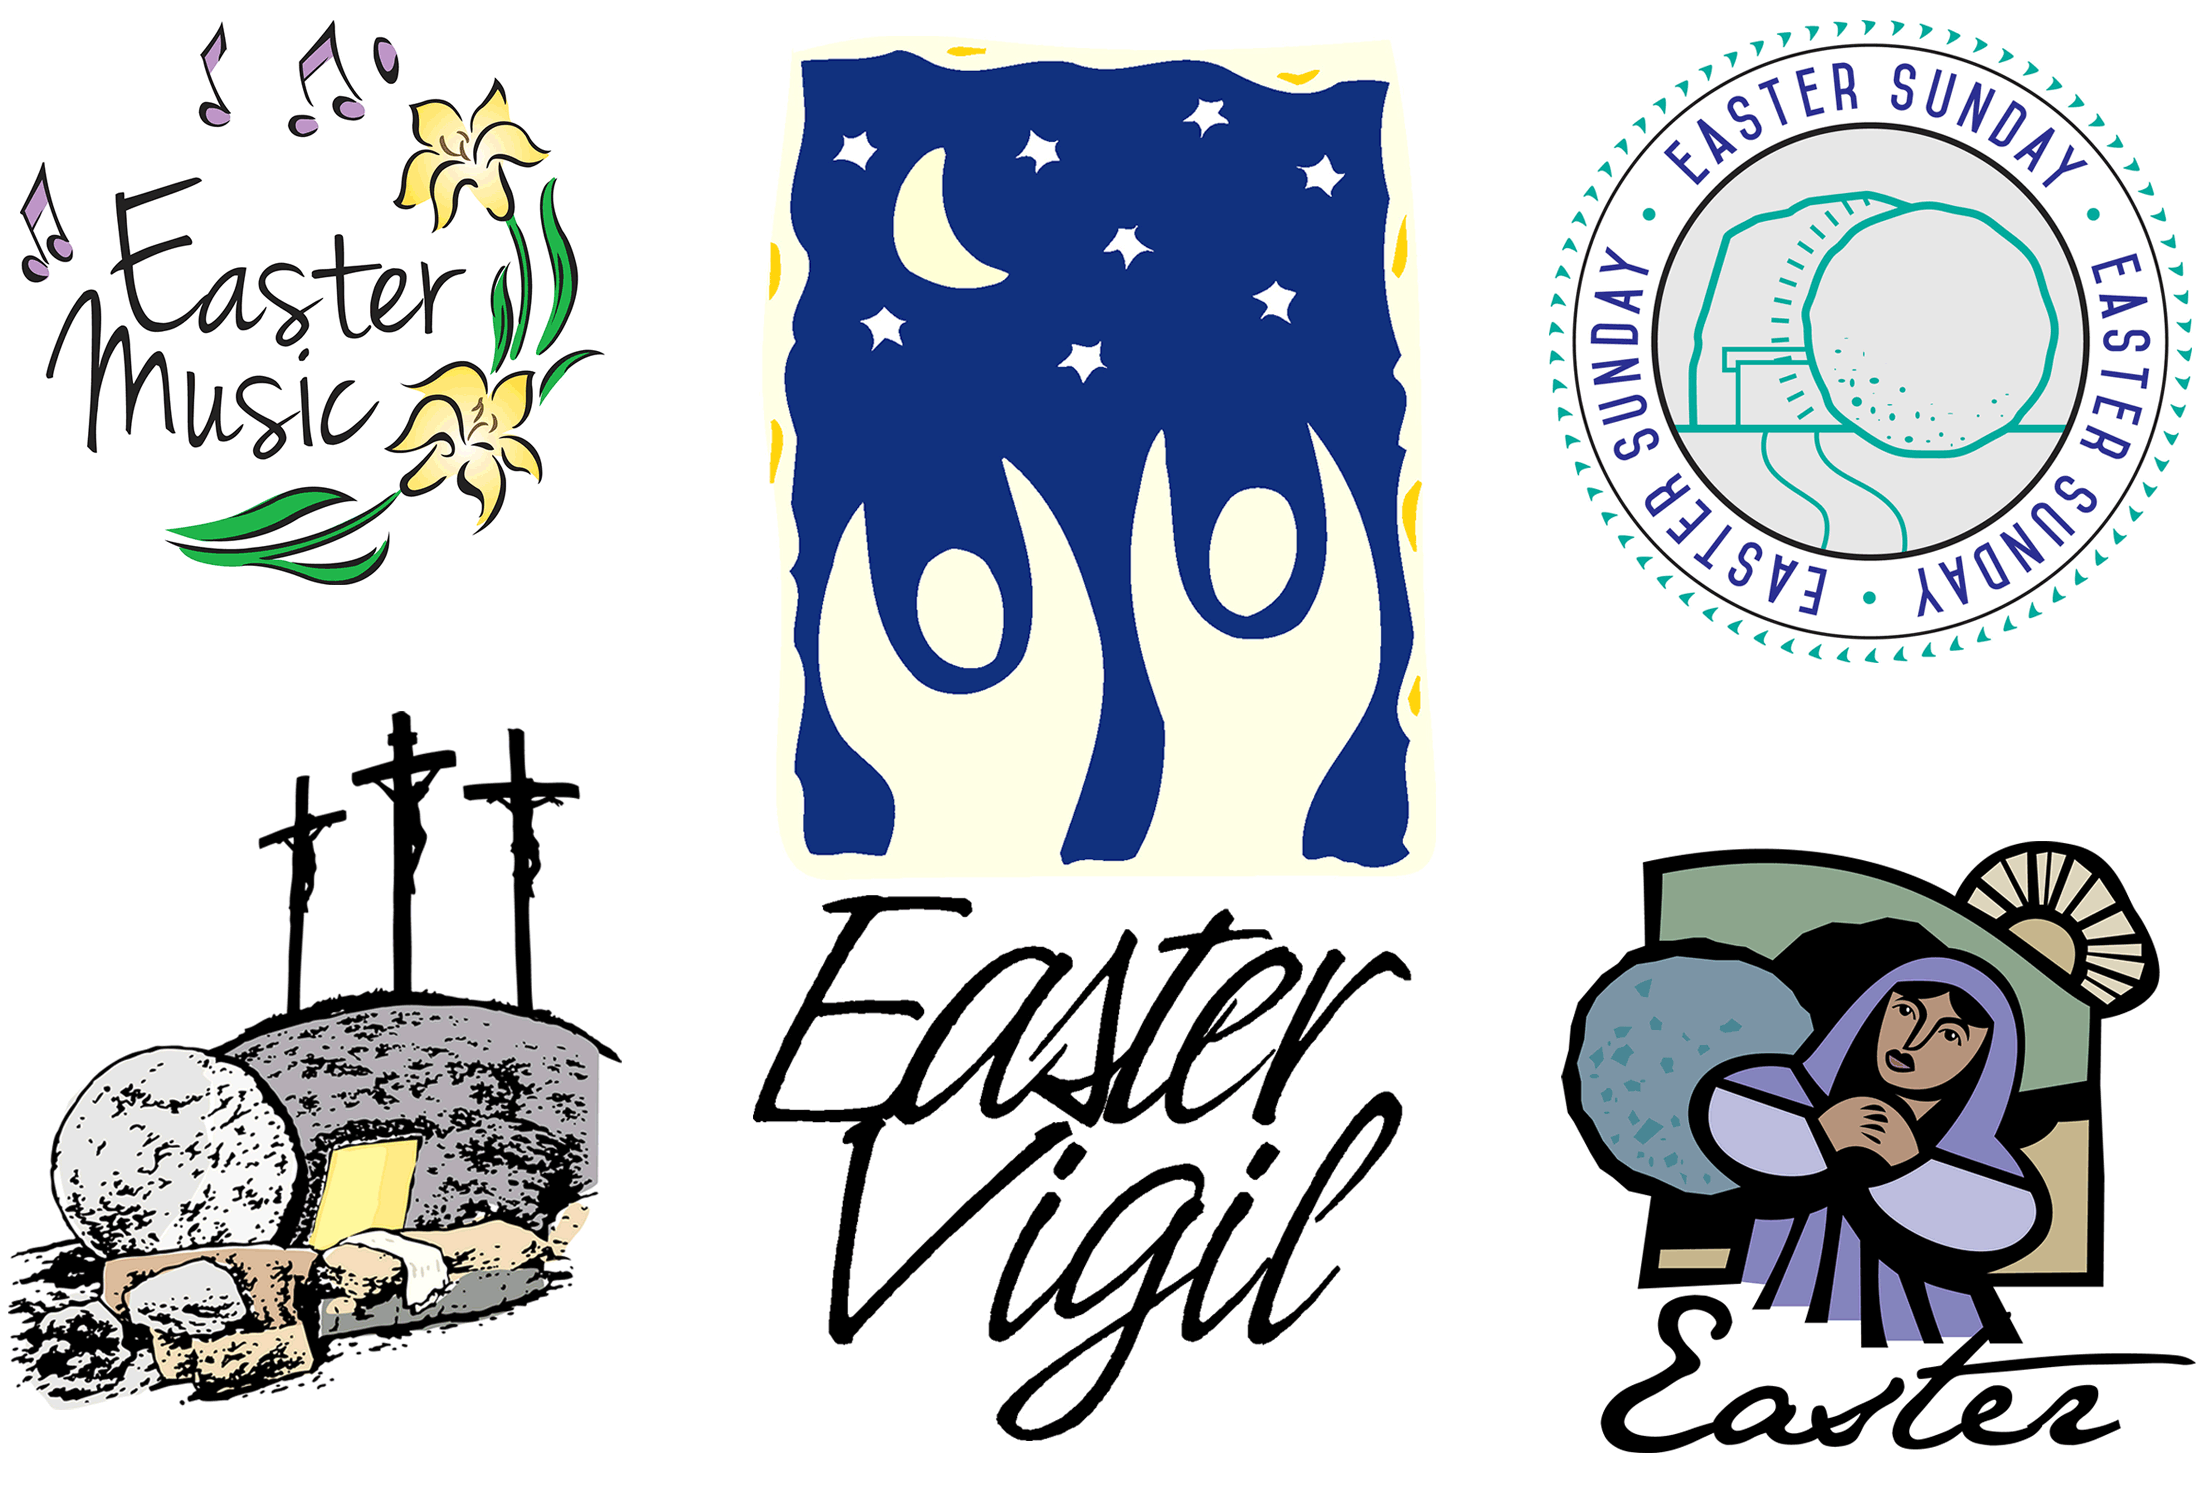 Easter Sunday Clipart variety of image styles